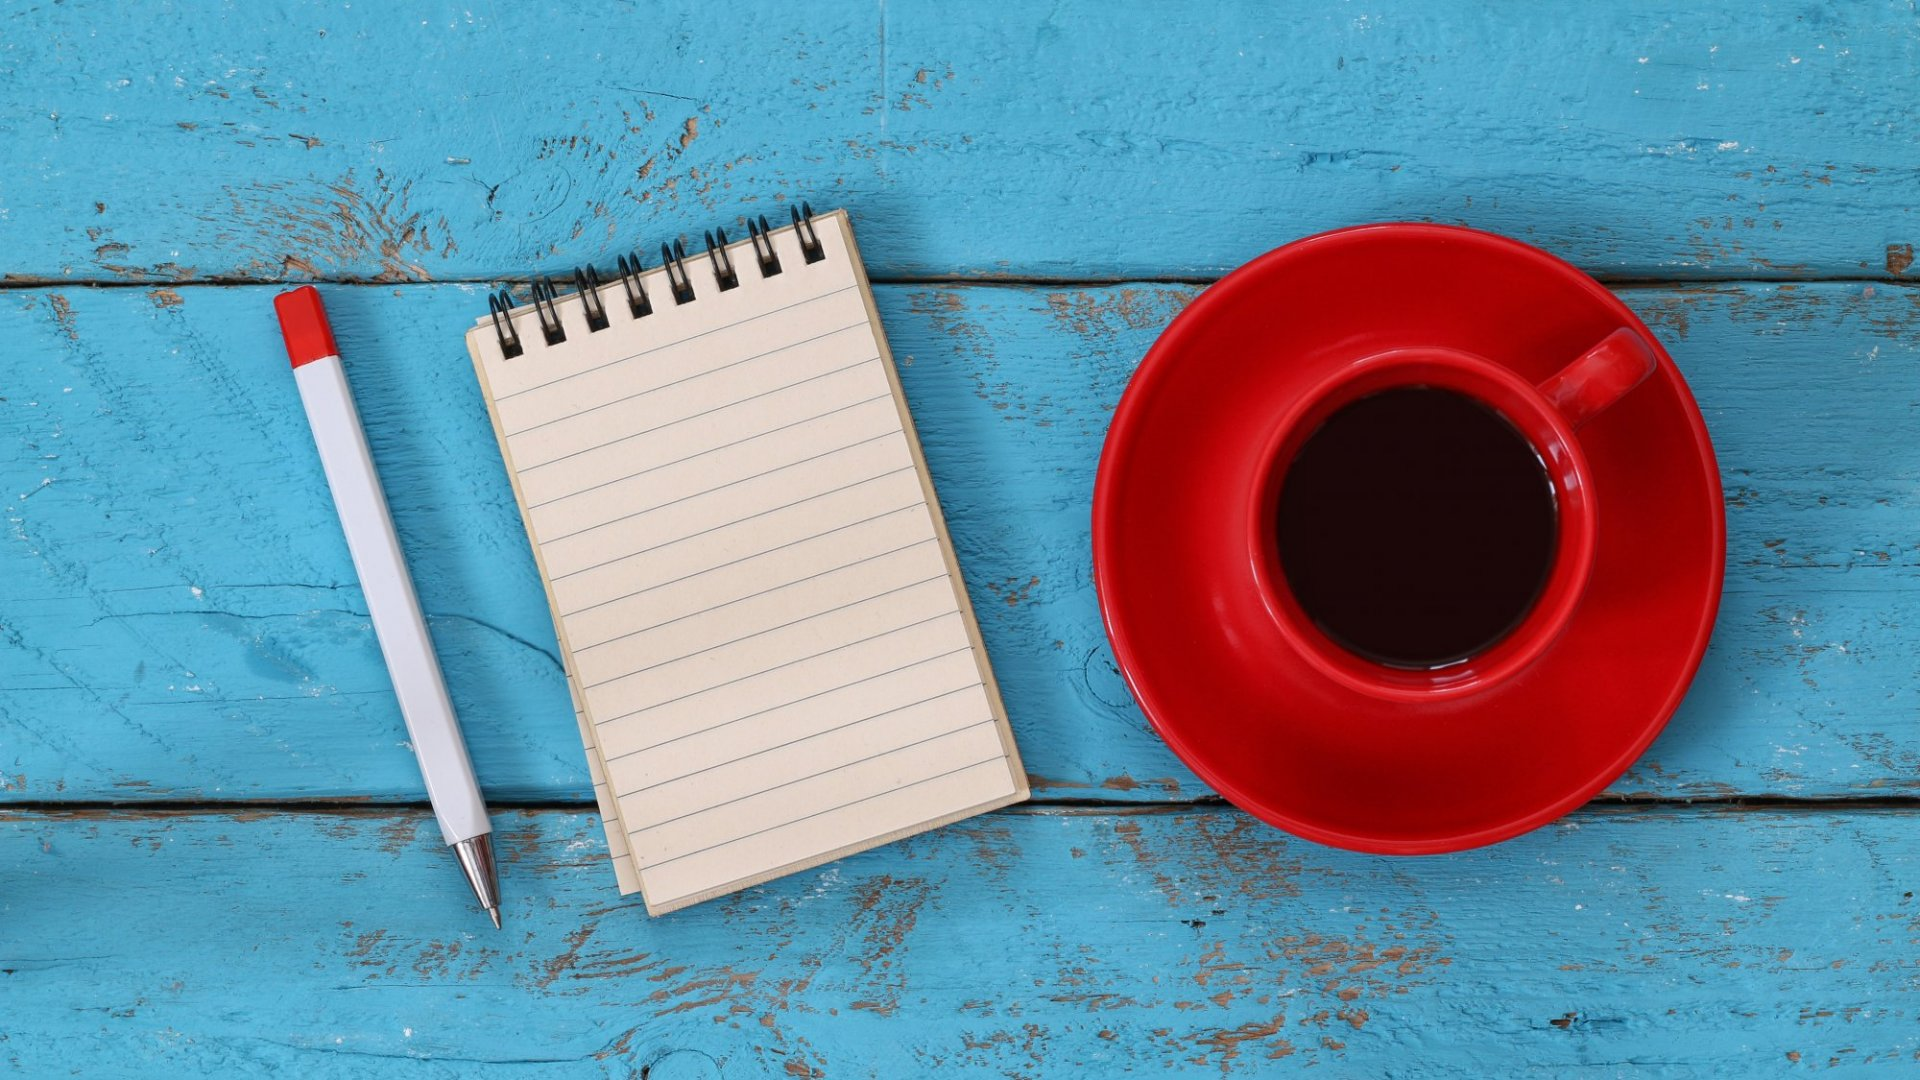 Does Your To-Do List Give You Anxiety? Try Making These 2 Easy Changes